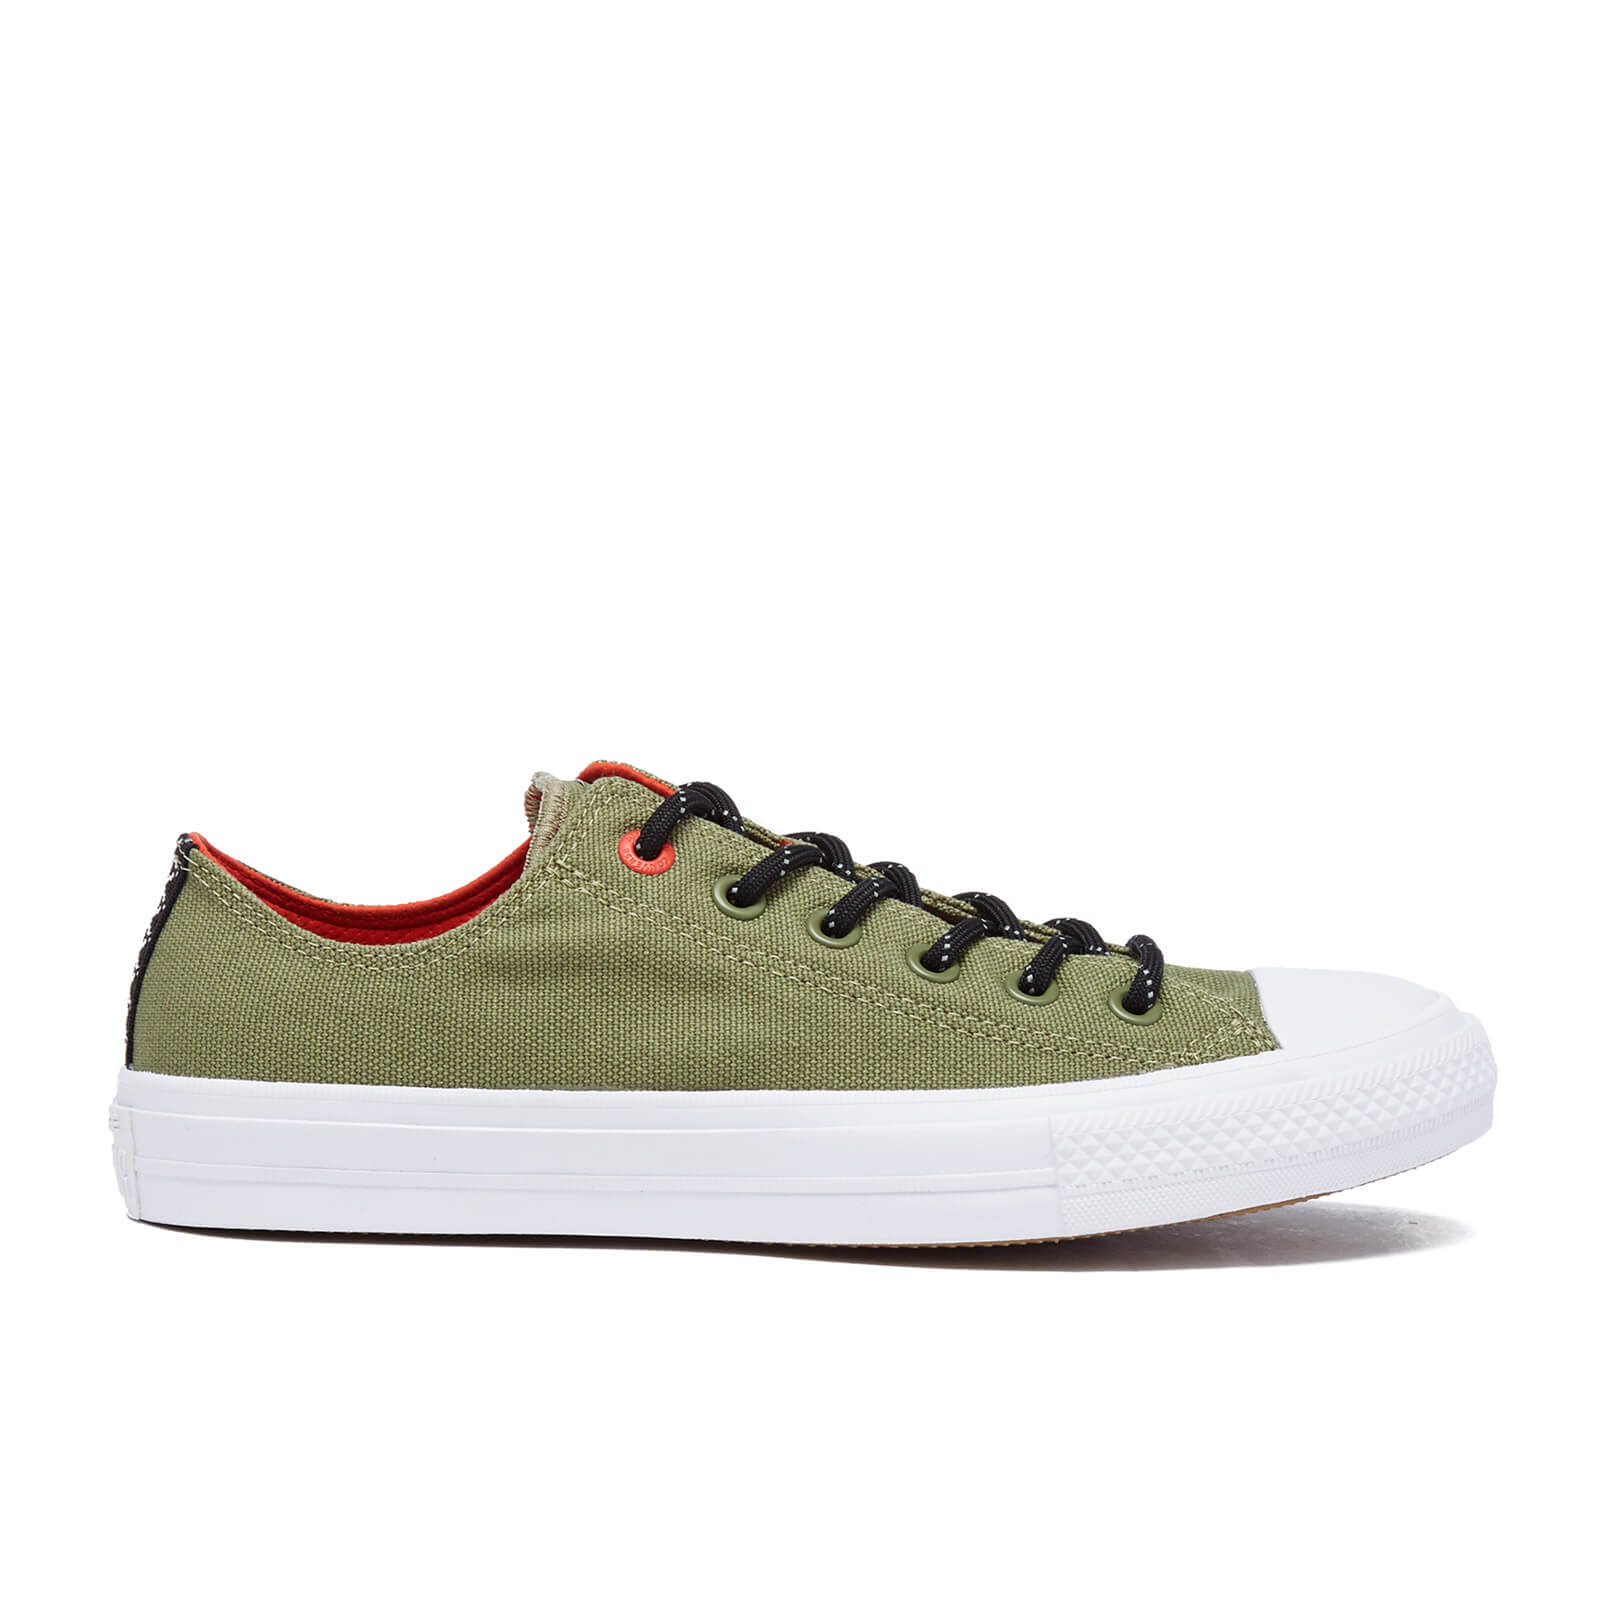 61518e715af Converse Men s Chuck Taylor All Star II Shield Canvas Low Top Trainers -  Fatigue Green Signal Red - Free UK Delivery over £50